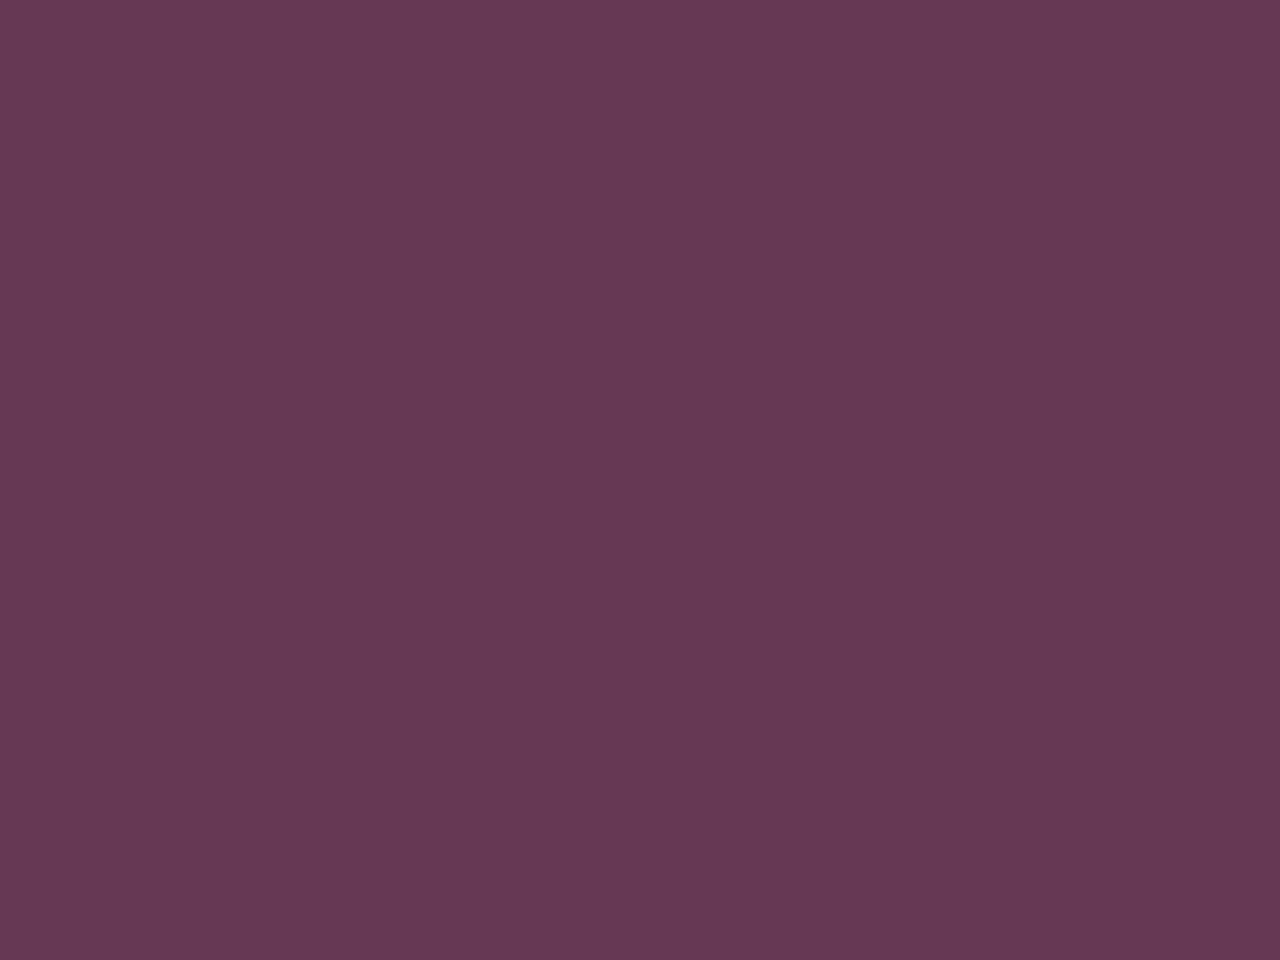 1280x960 Halaya Ube Solid Color Background